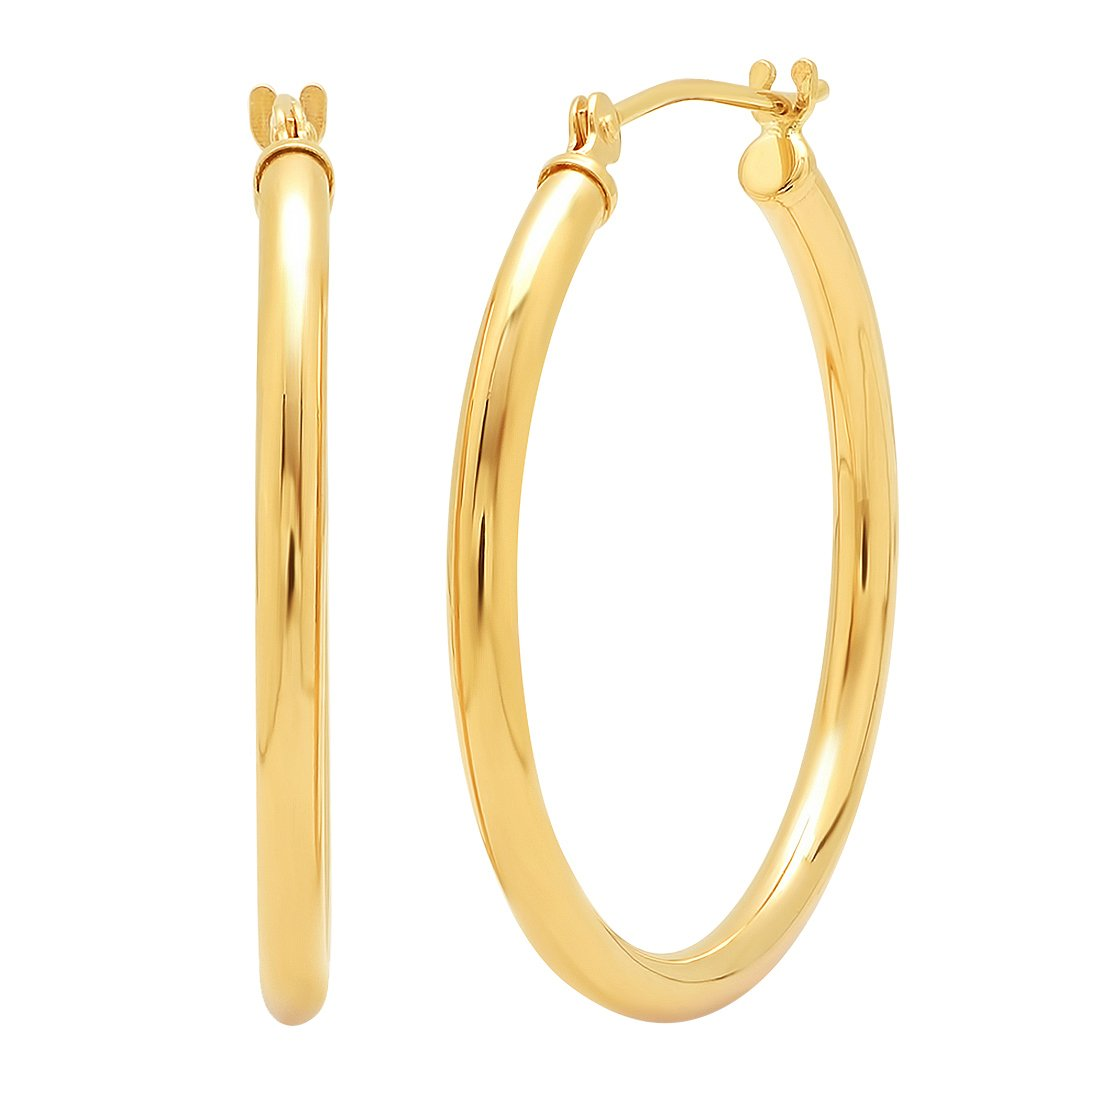 14K Yellow Gold 1 inch Diameter Round Hoop Earrings by Amanda Rose Collection